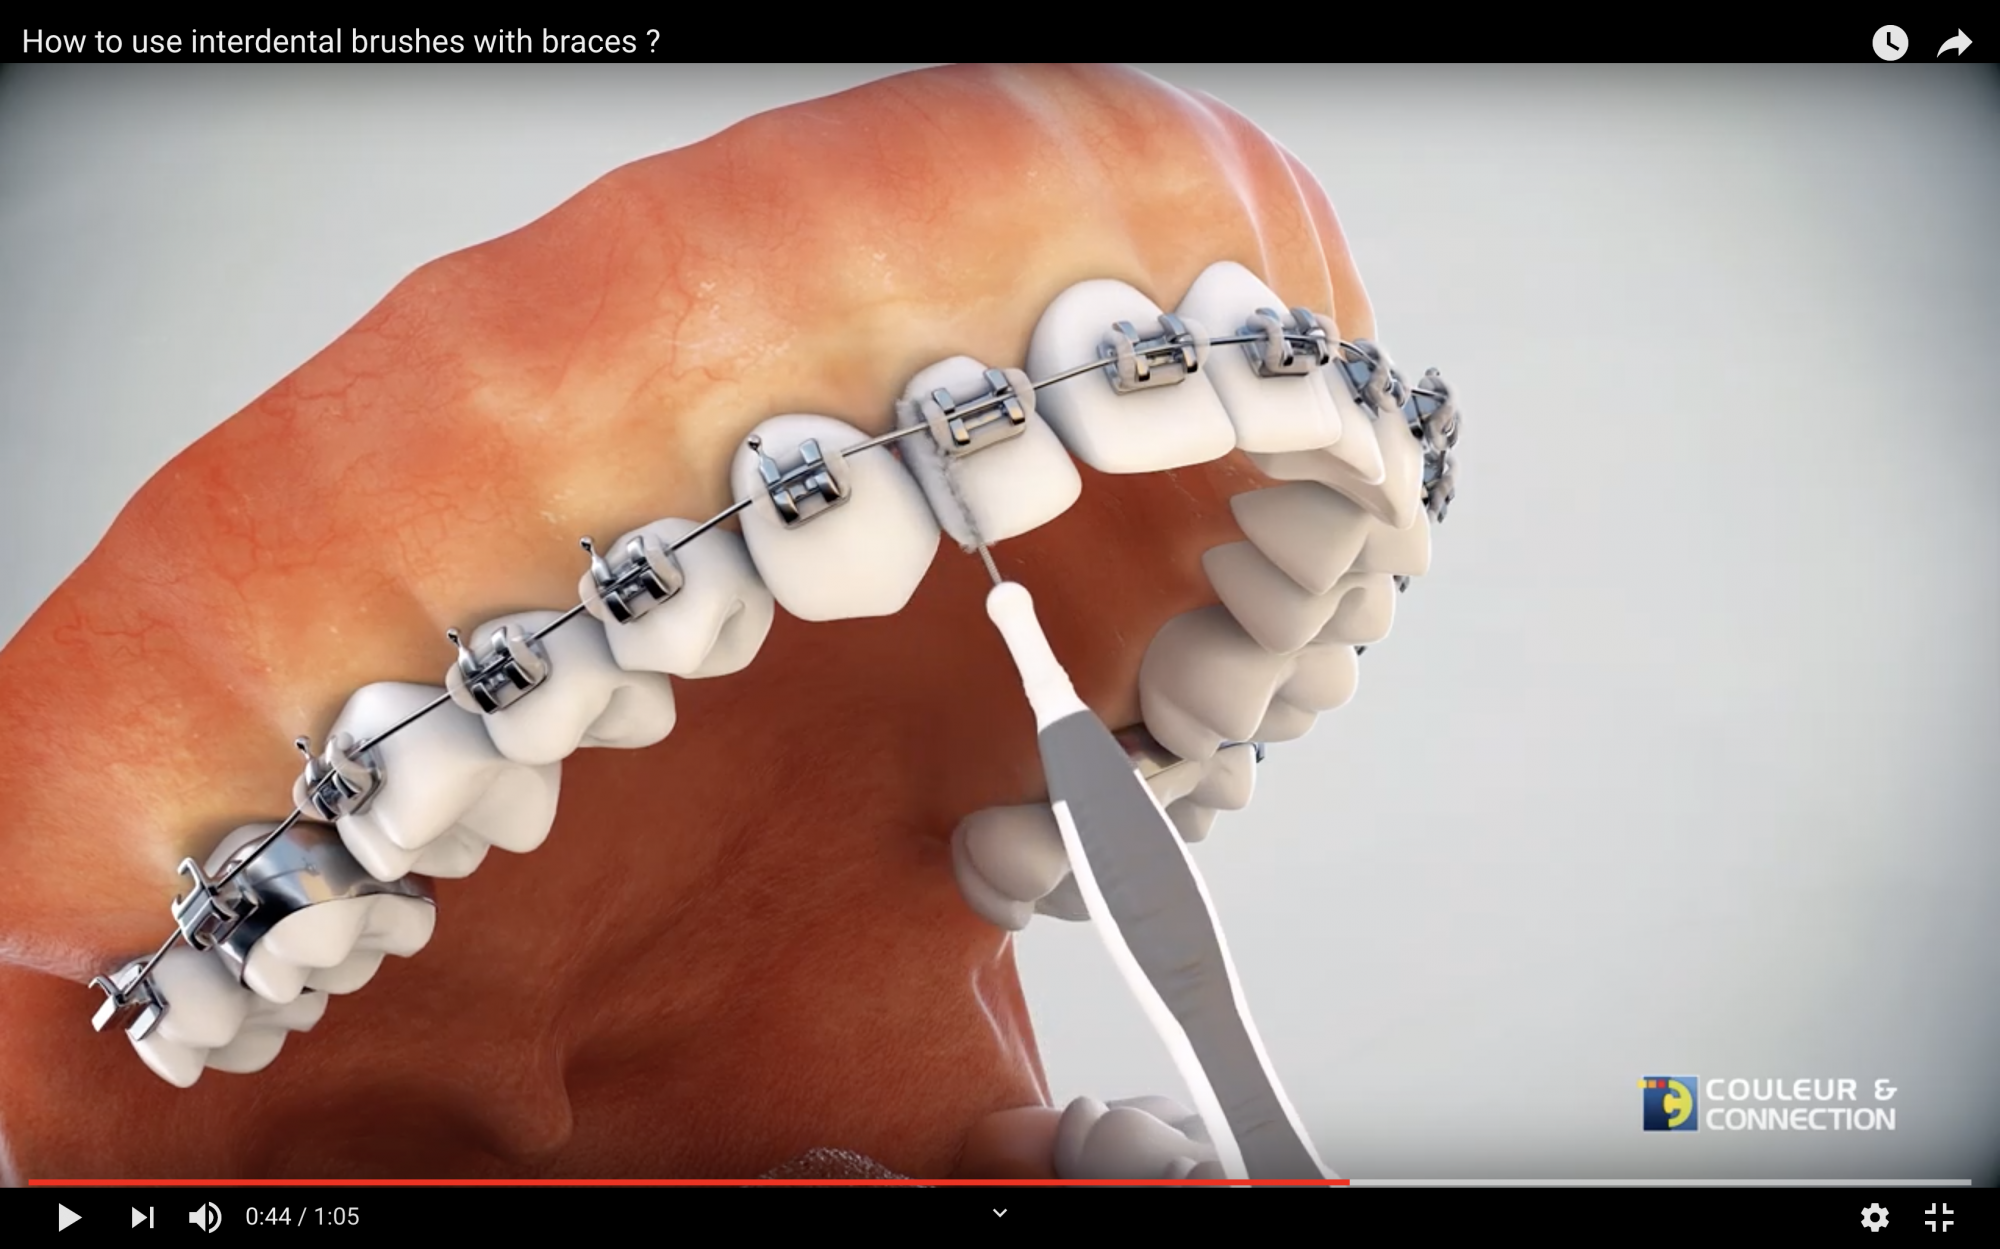 Keep using interdental brushes for your braces